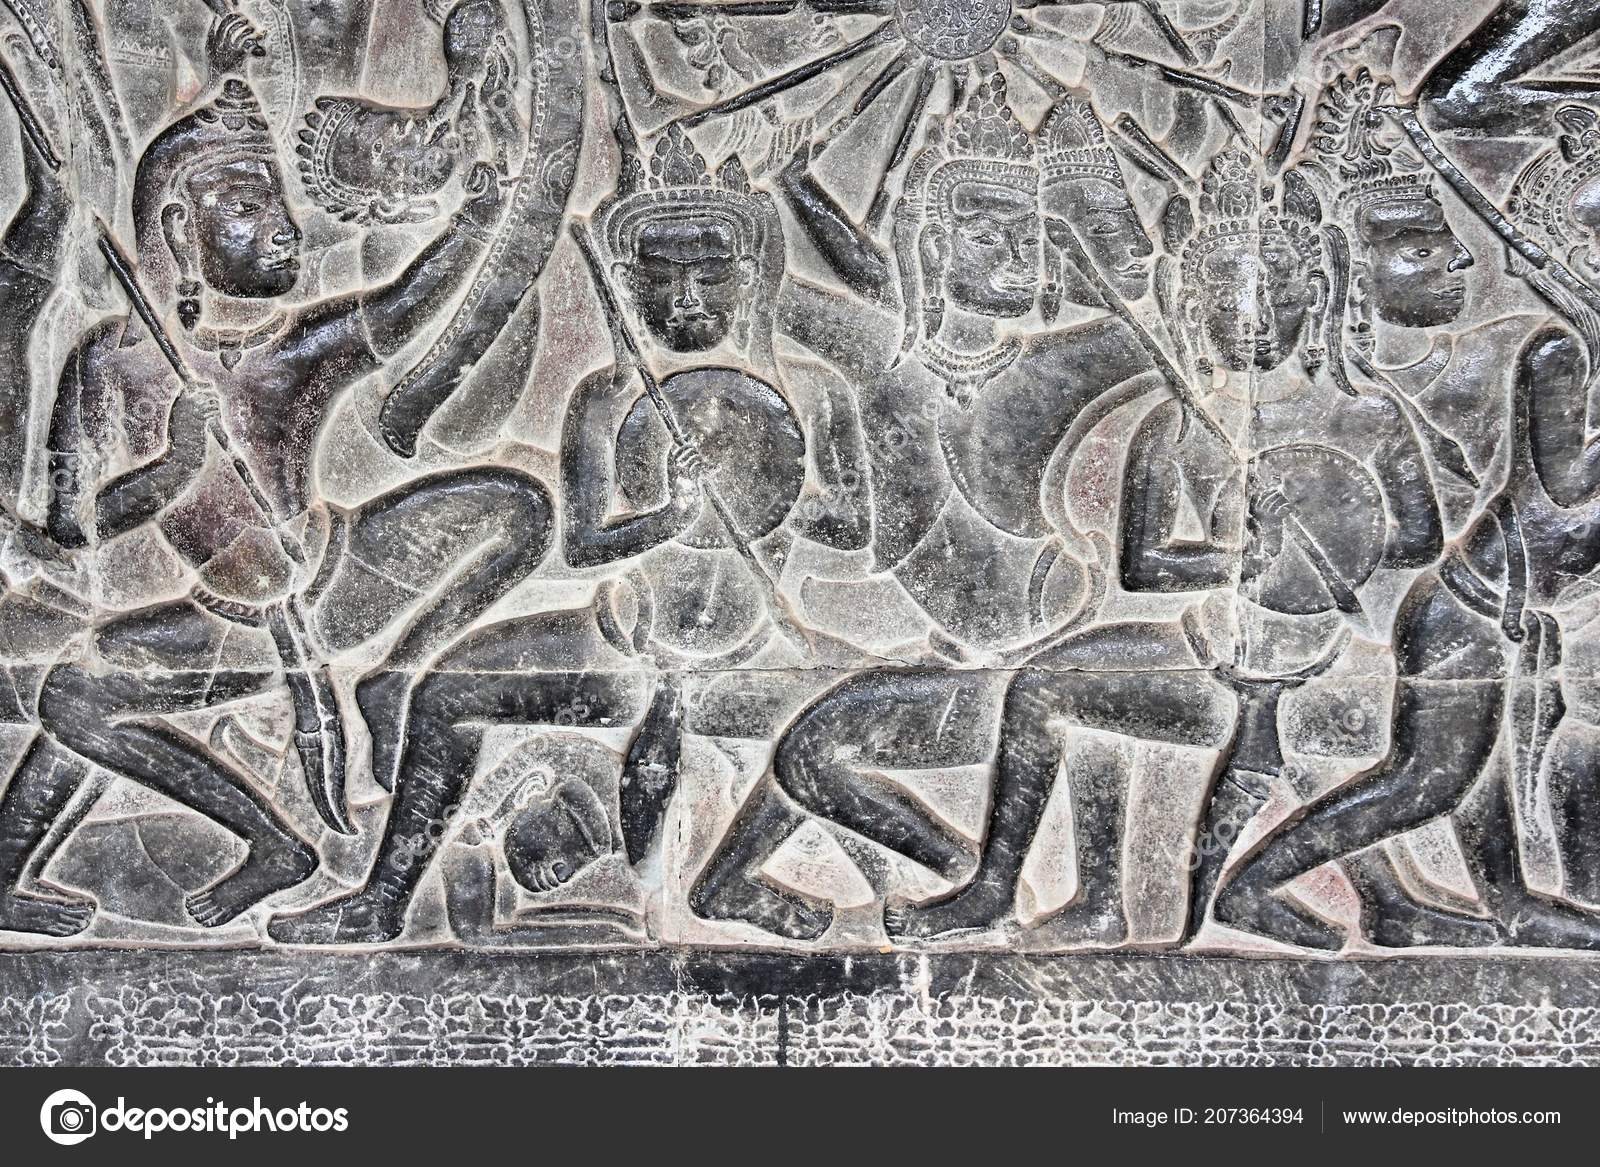 Angkor wat stone carving artworks khmer temple cambodia unesco